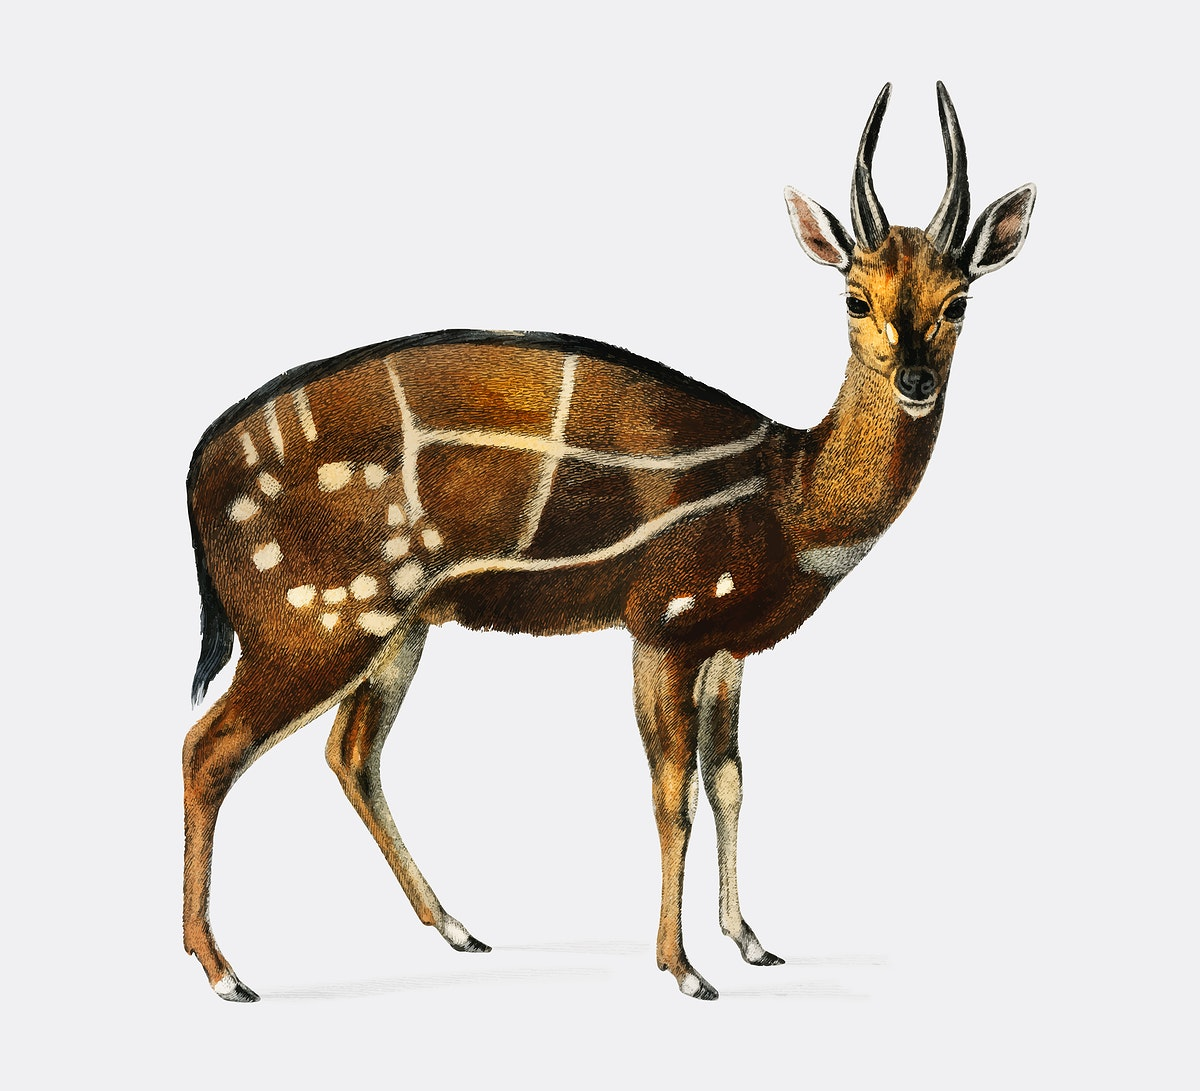 Antilope guib illustrated by Charles Dessalines D' Orbigny (1806-1876). Digitally enhanced from our own 1892 edition of…